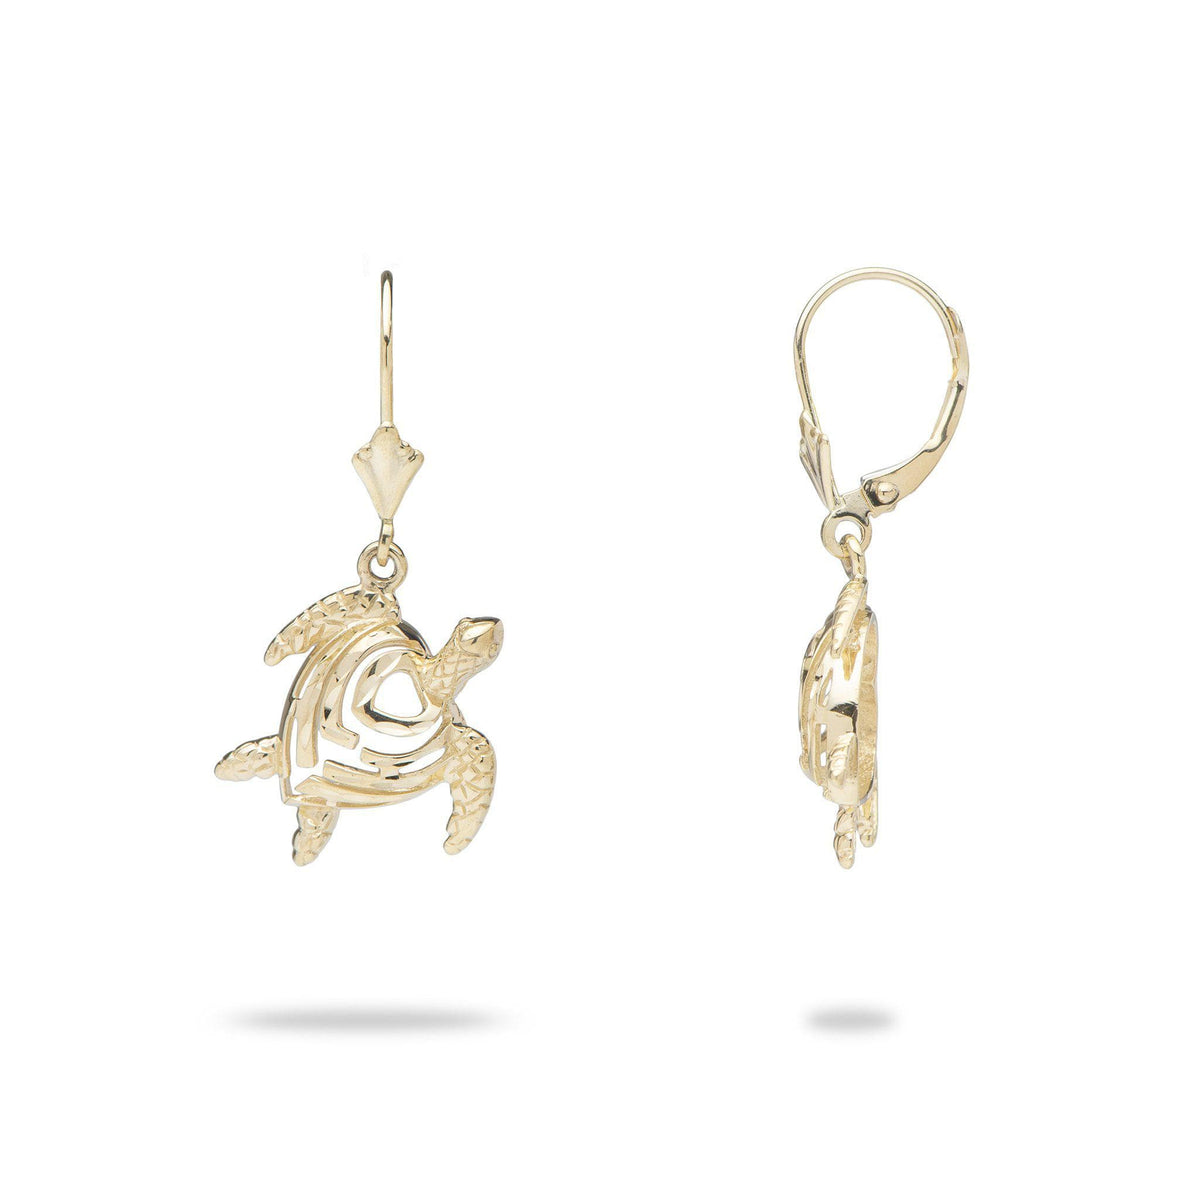 Aloha Heart Honu Turtle Earrings in 14K Yellow Gold